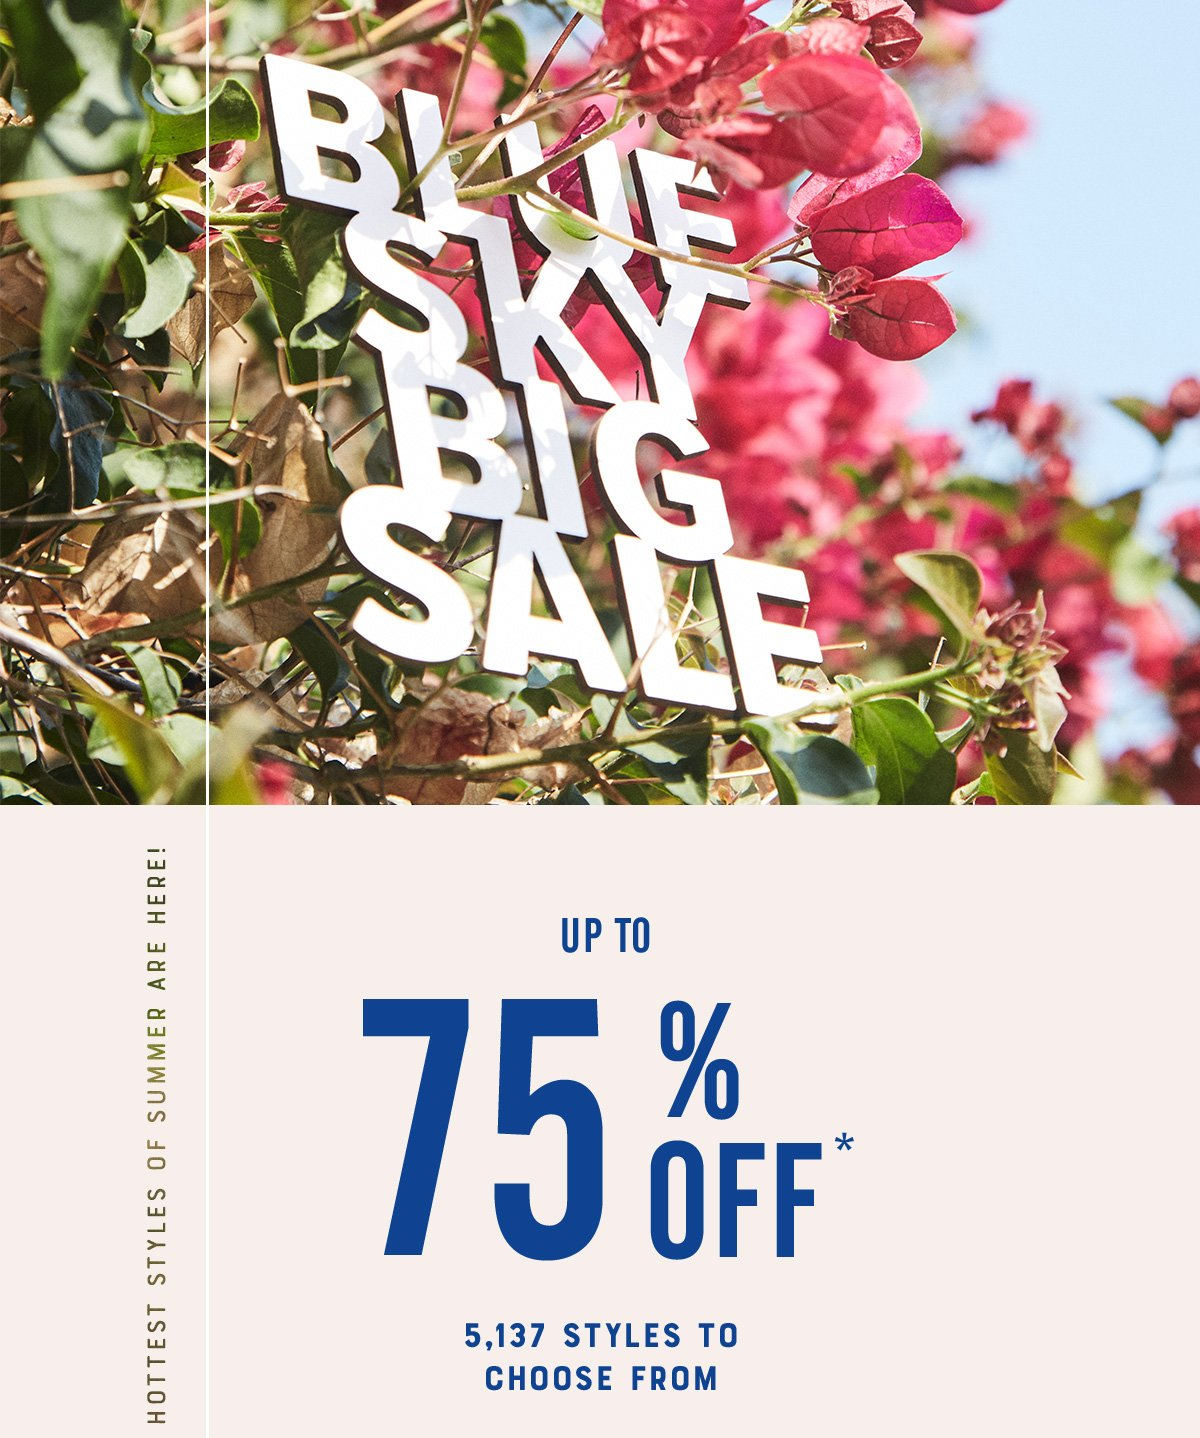 Up to 75% Off*